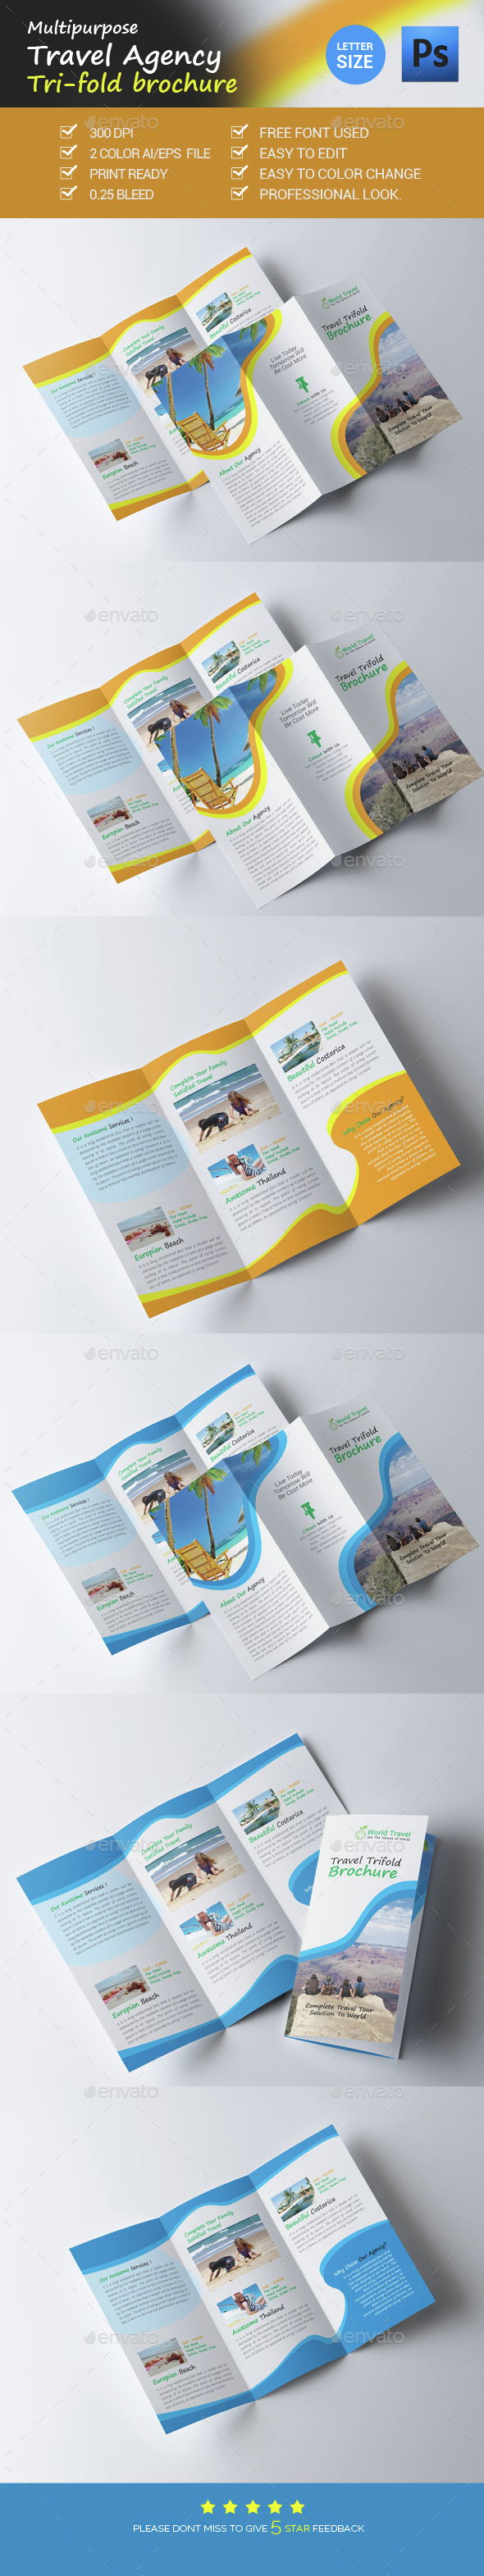 Travel Agency Trifold Brochure - Brochures Print Templates